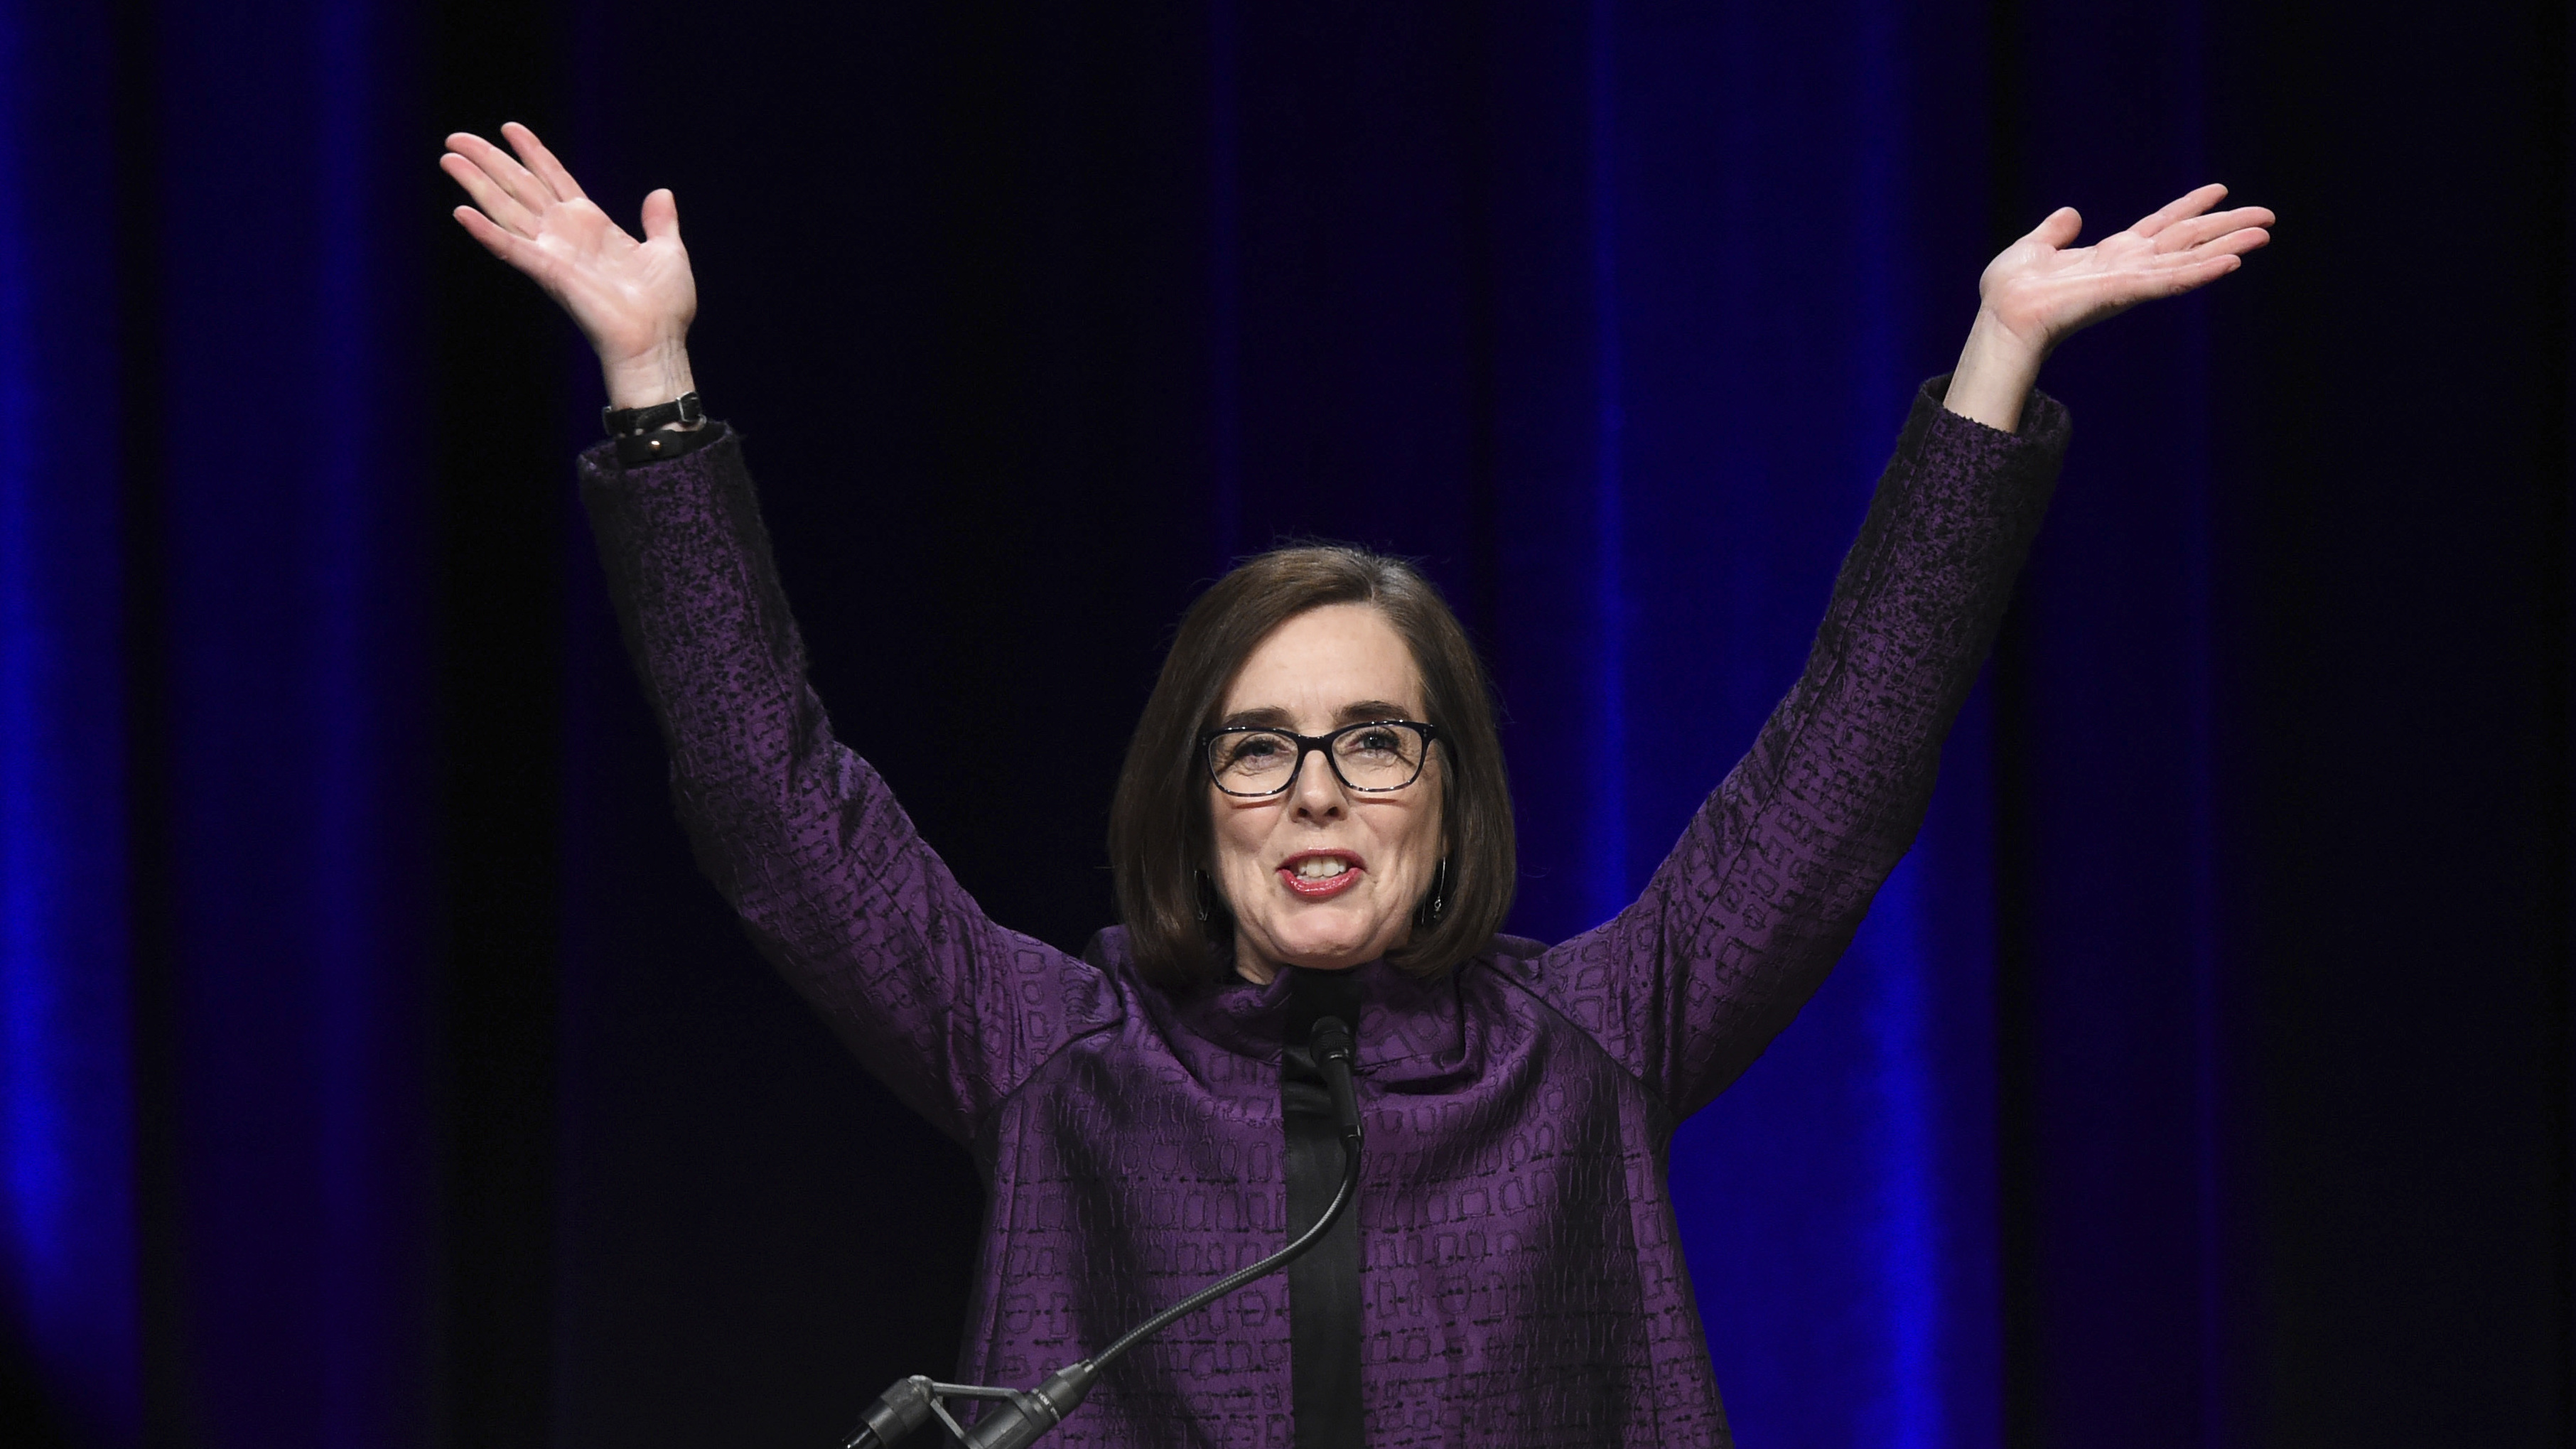 For First Time, Openly LGBT Governor Elected: Oregon's Kate Brown